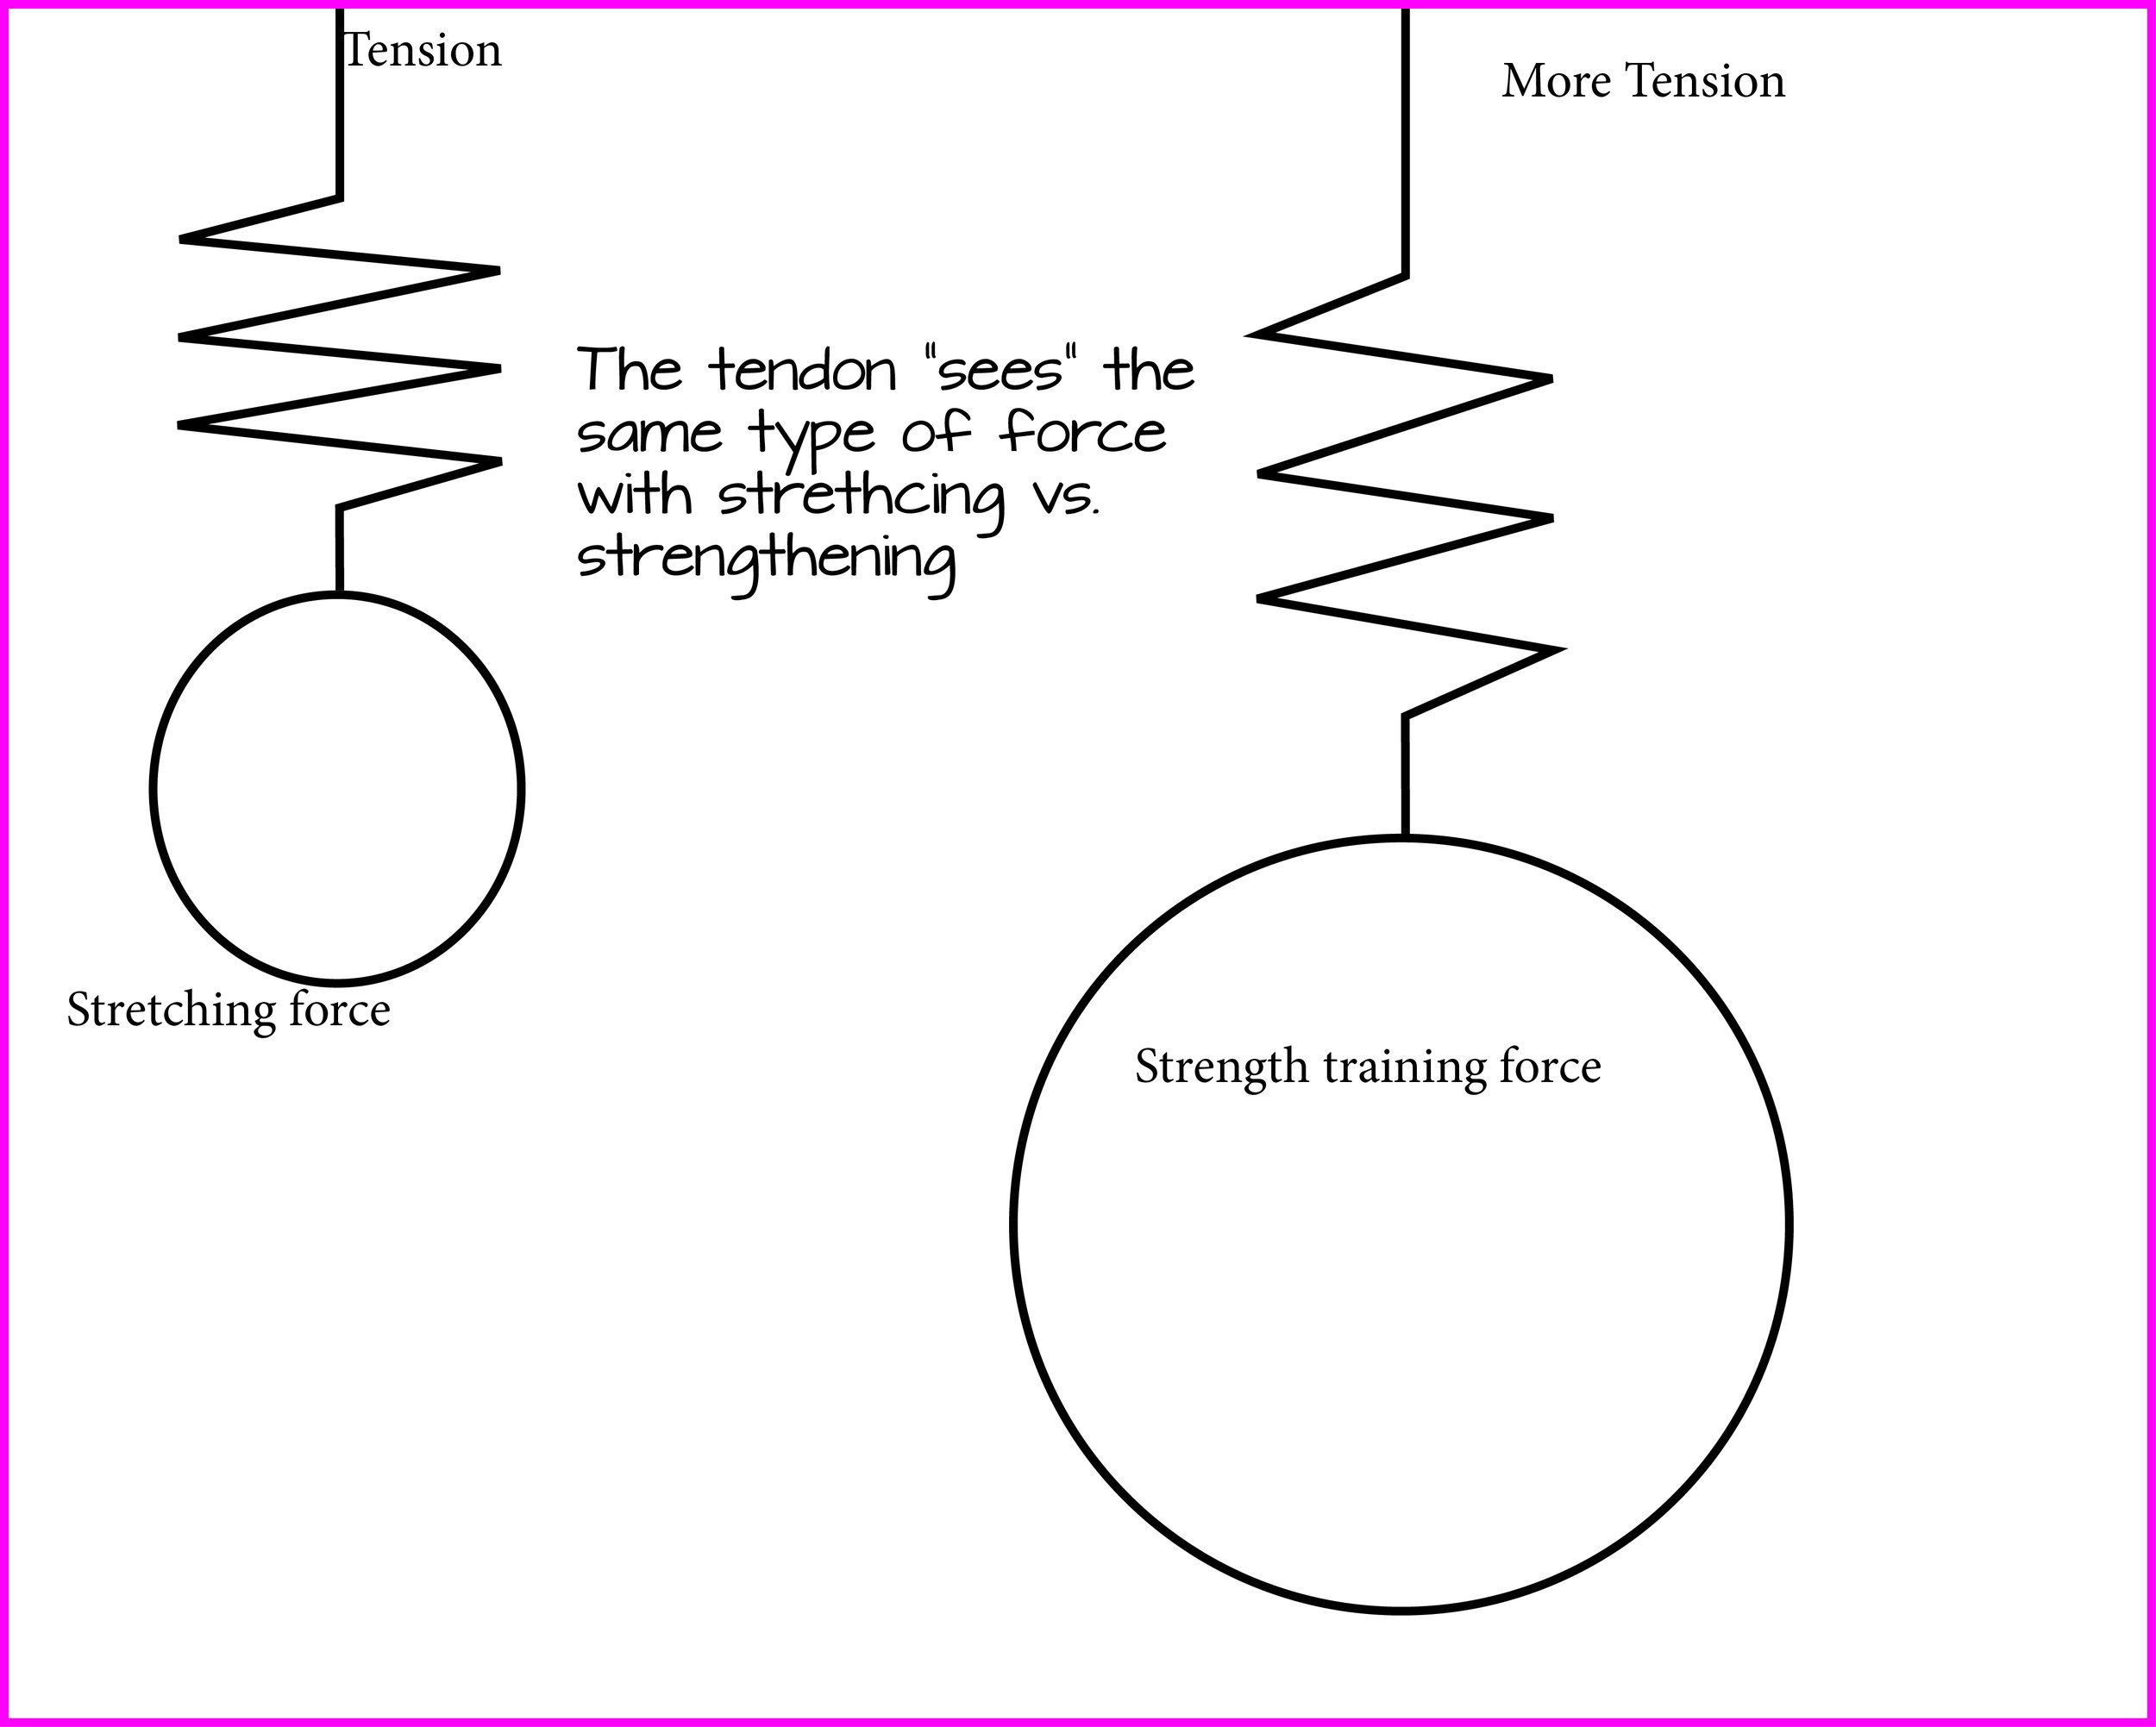 The type of load on the tendon is the same and responds similarly. Its the amount of load that is different